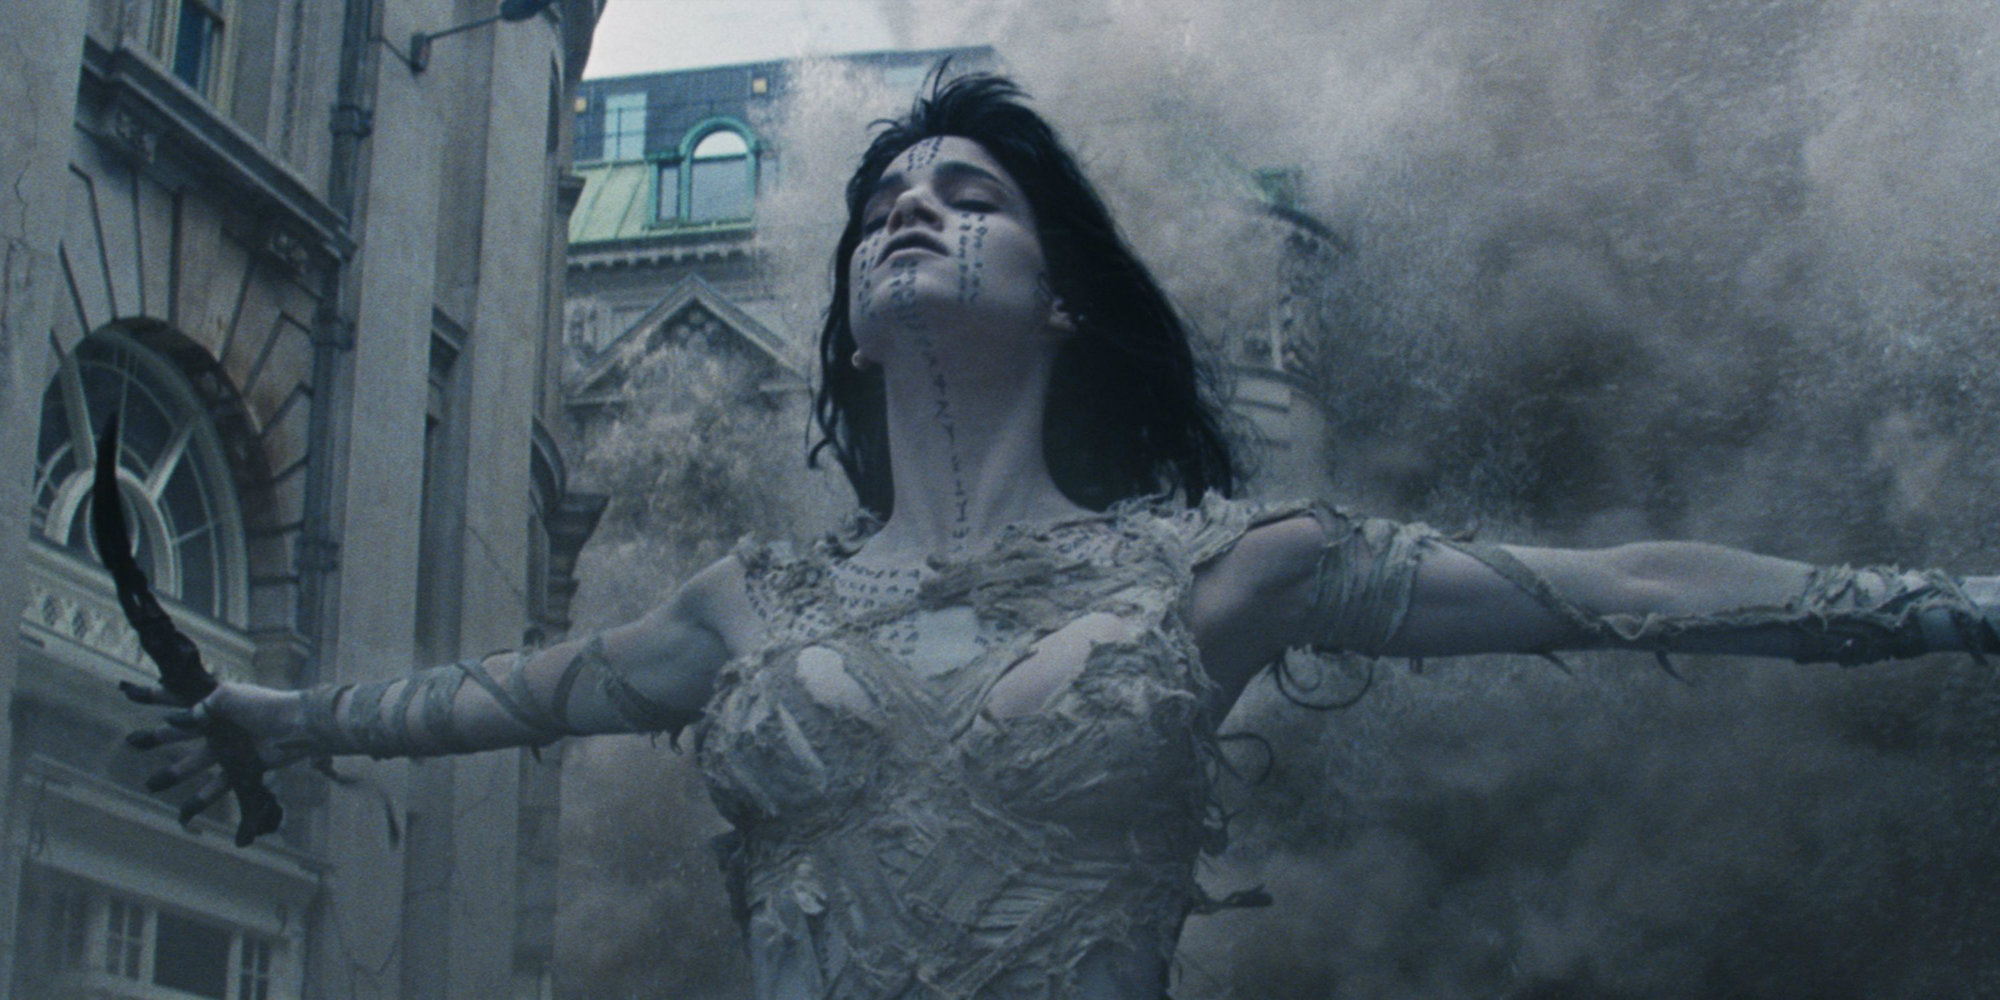 7. THE MUMMY   (Director: Alex Kurtzman)   A glimpse into what it might be like watching Tom Cruise direct, as he reportedly used his leverage to take over significant elements of the final product,  The Mummy  is the movie that killed the Universal Studios' Dark Universe before it ever got started. Cruise finds himself opposite Sofia Boutella in a silly, overlong, action/sci-fi/fantasy that has a half-dead Jake Johnson cracking jokes, Boutella all villainy, and Cruise completely overwhelmed by everything.